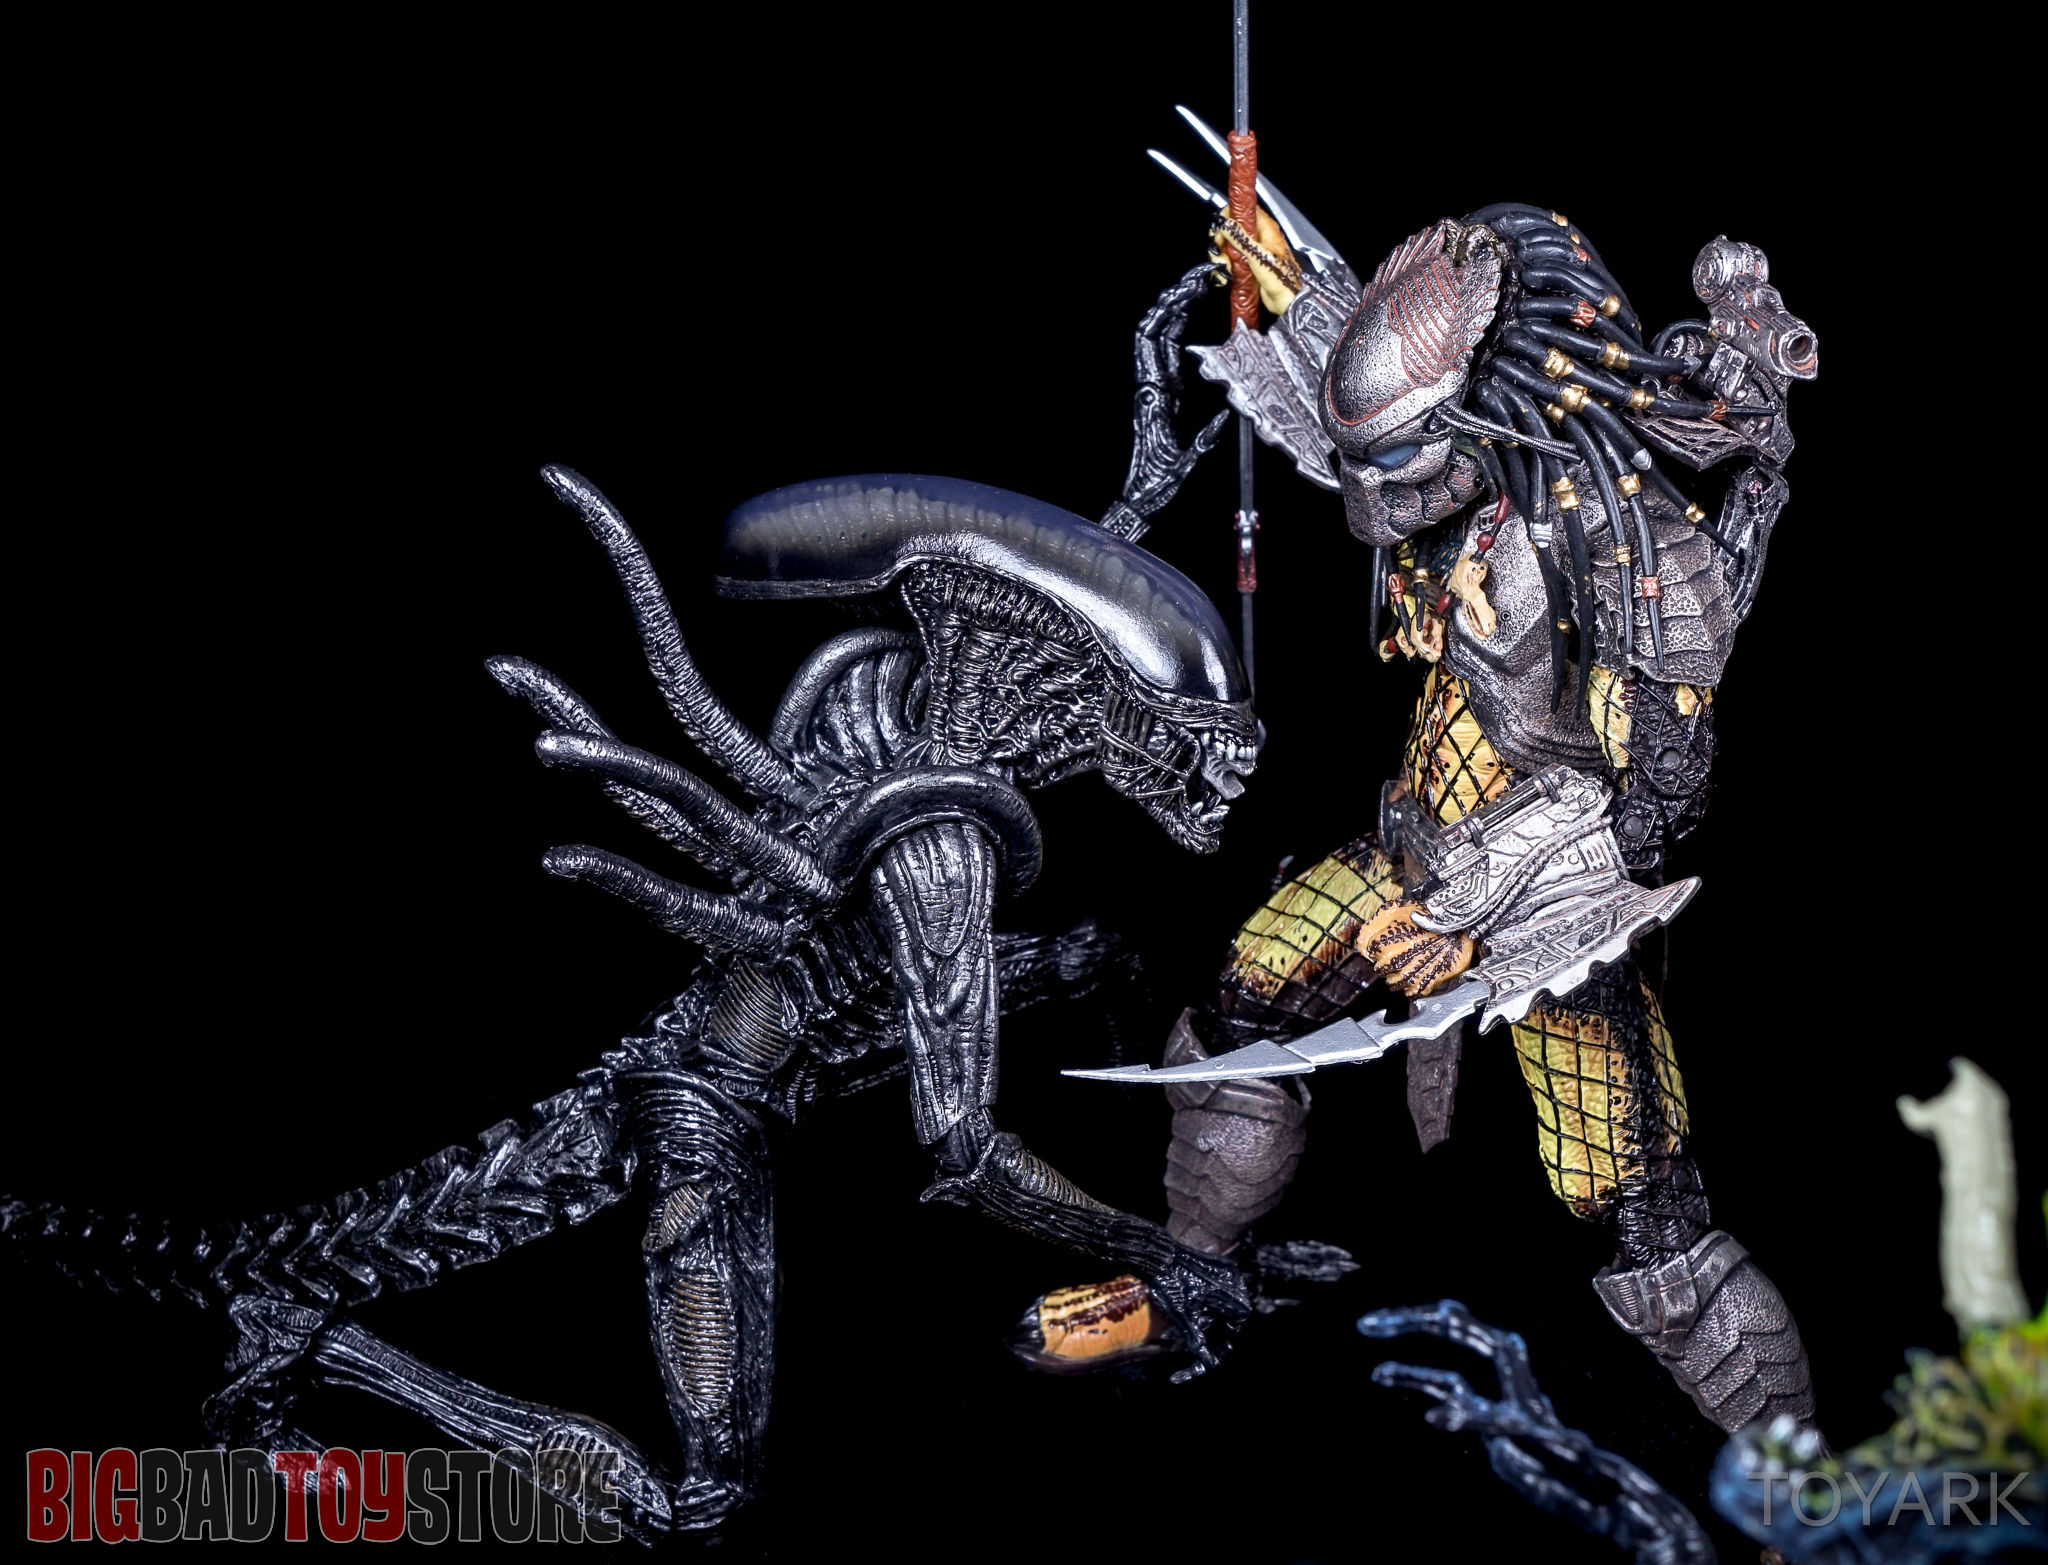 http://news.toyark.com/wp-content/uploads/sites/4/2016/05/NECA-Predator-Series-15-AvP-081.jpg